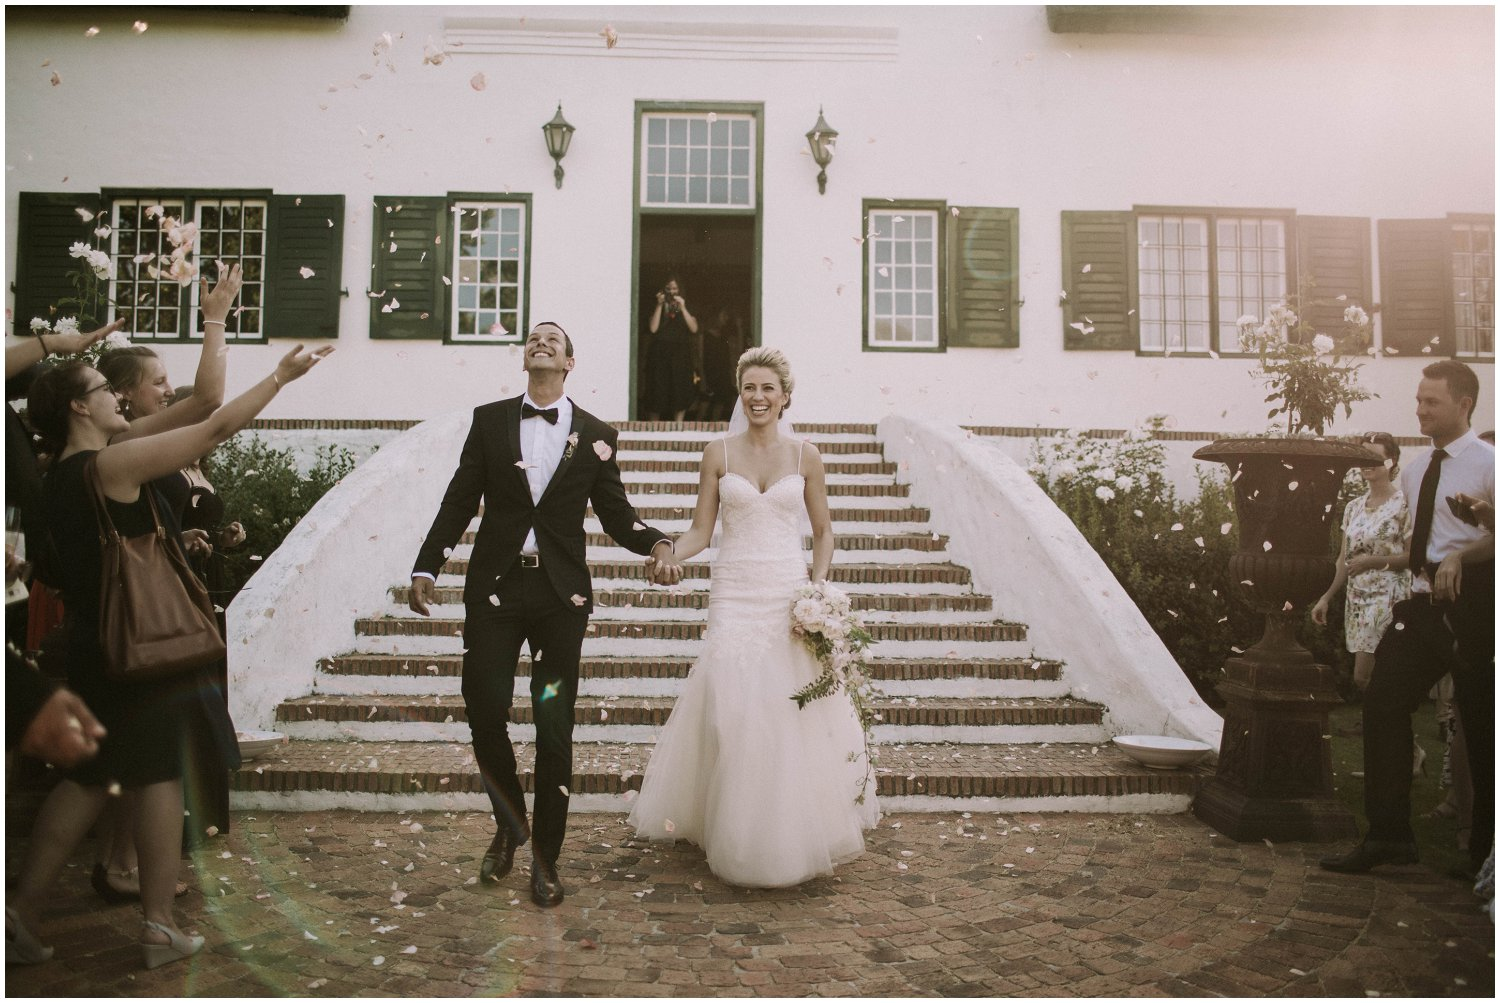 Top Artistic Creative Documentary Wedding Photographer Cape Town South Africa Rue Kruger_0118.jpg